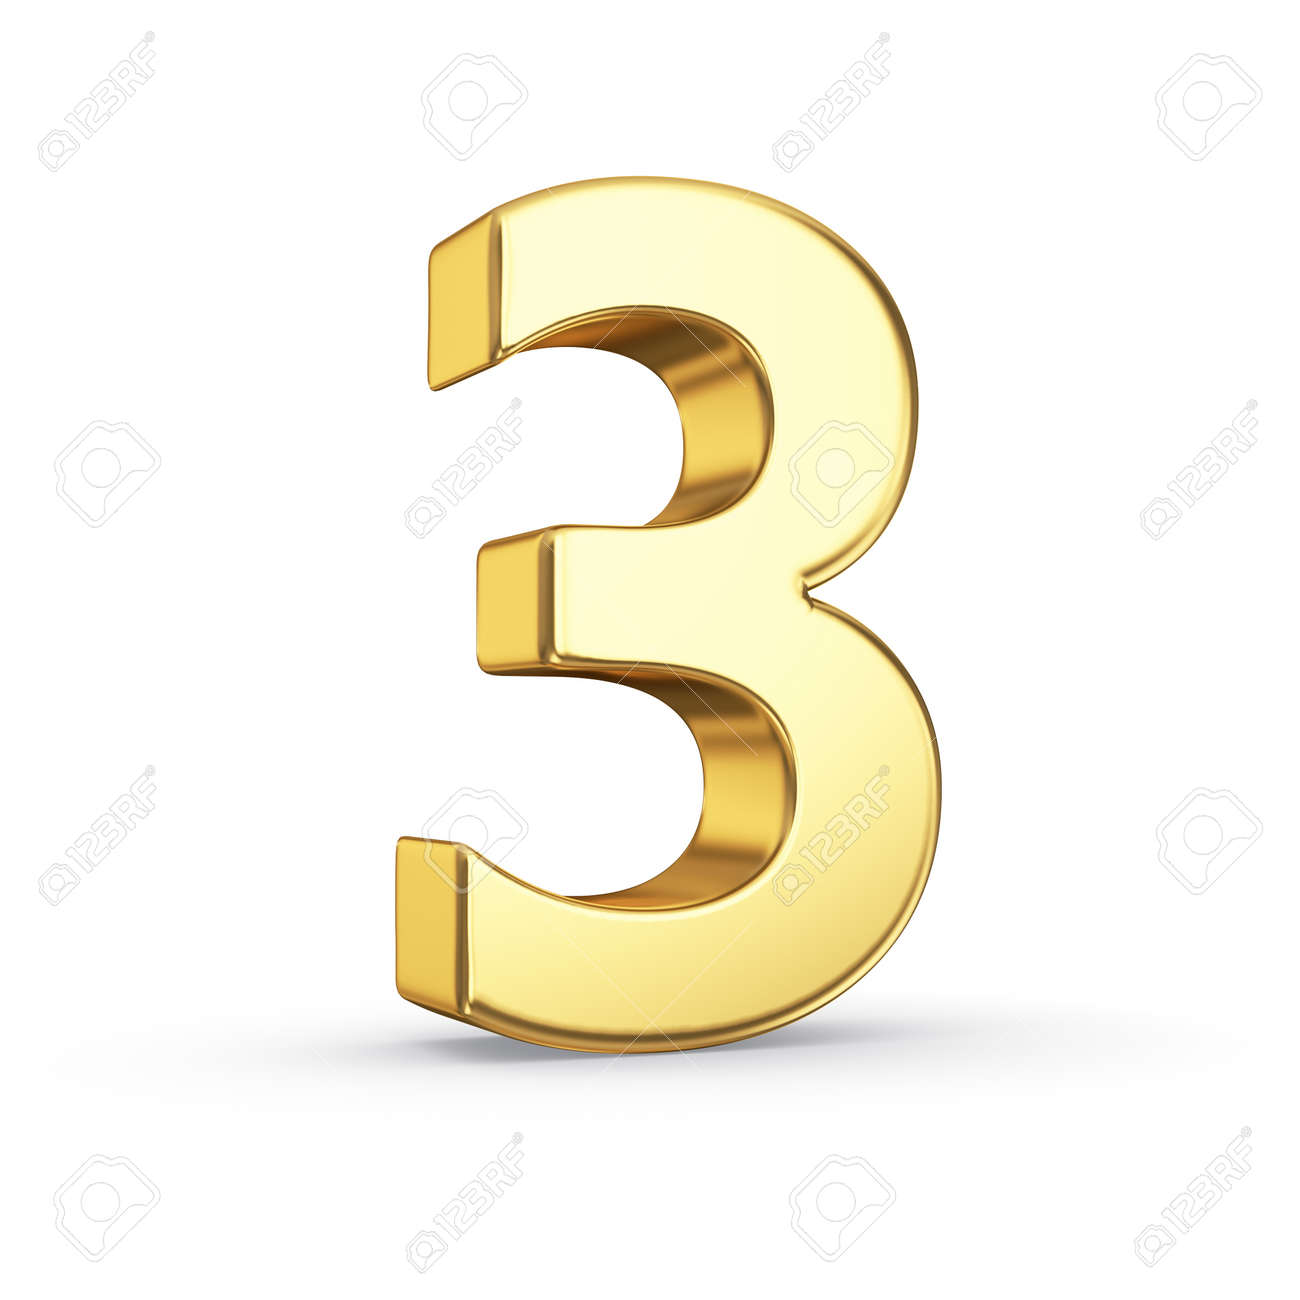 3D golden number 3 - isolated with clipping path - 21092466